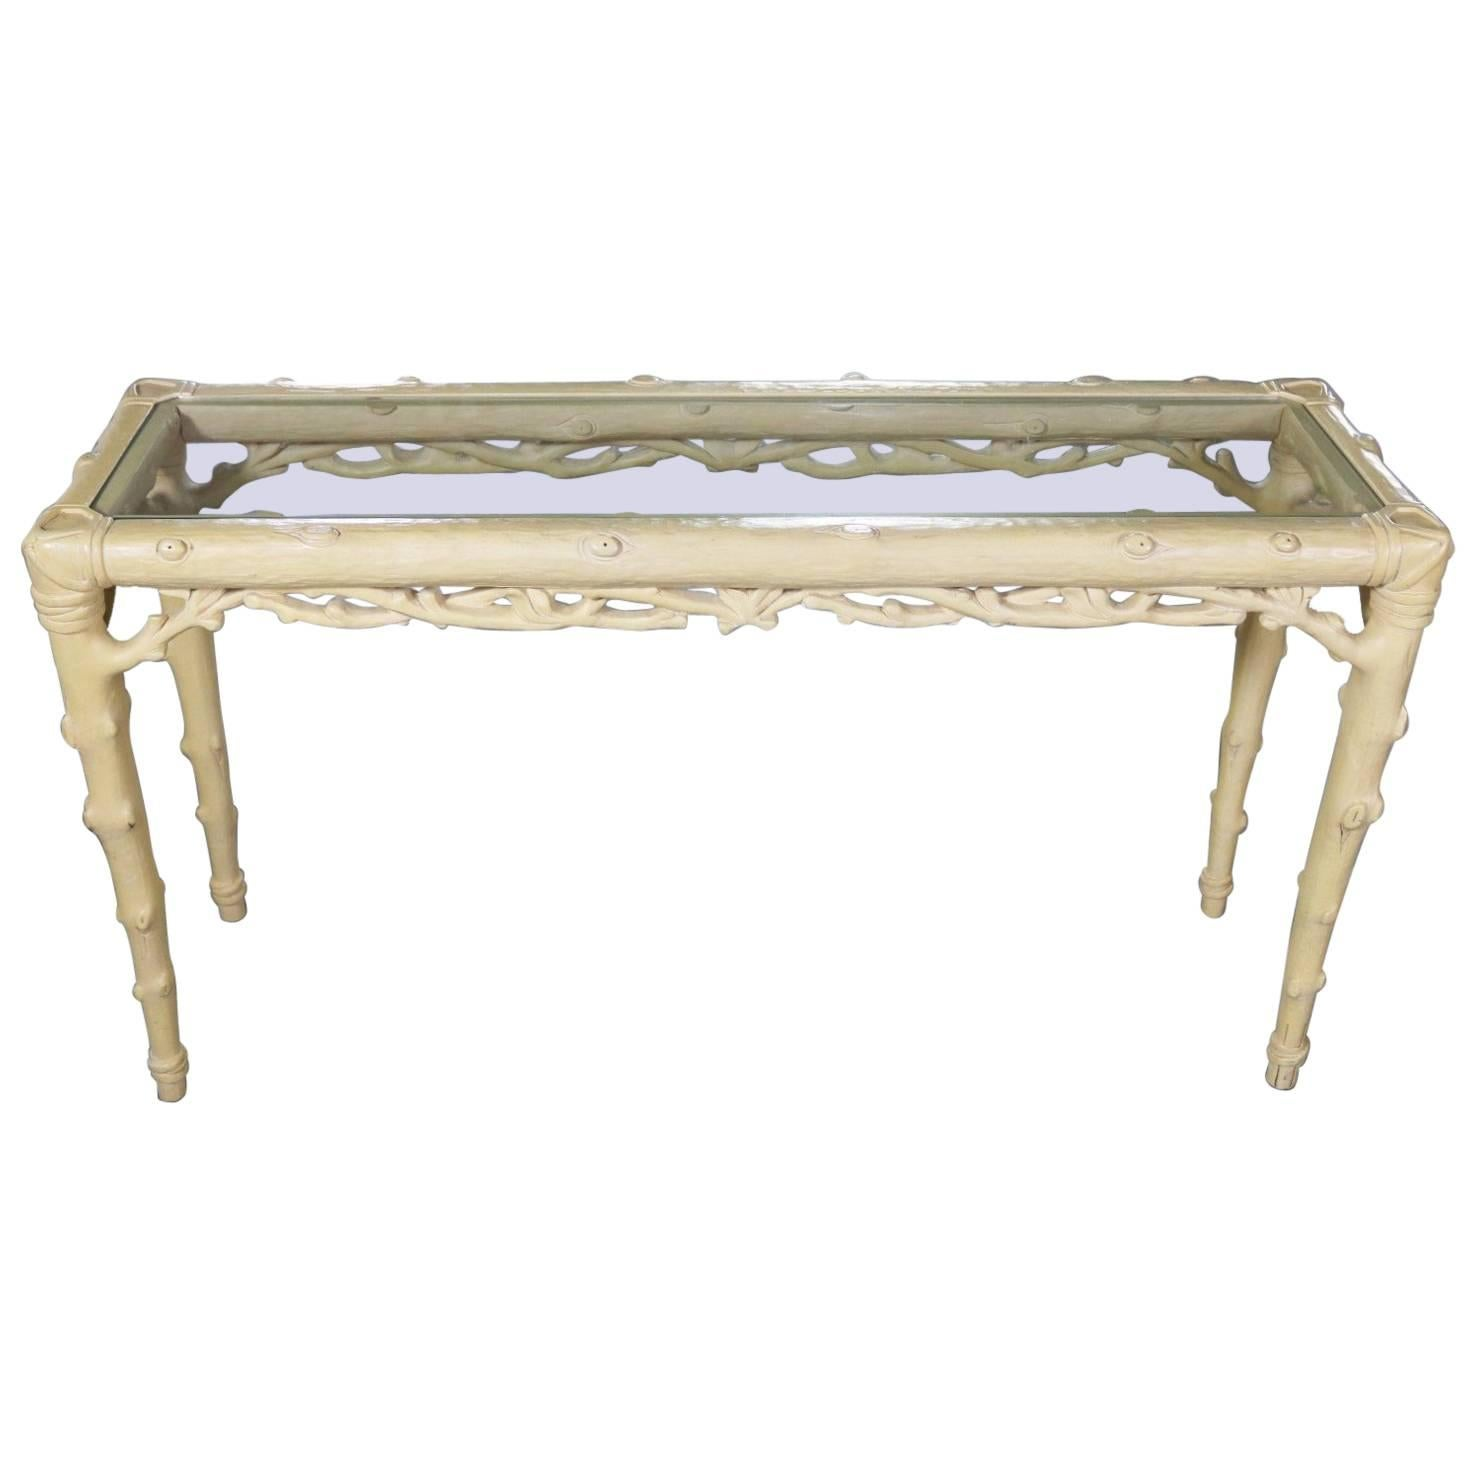 Carved Wood Faux Bois Sofa Console Table Ivory Painted Finish U0026 Glass Top  Insert For Sale